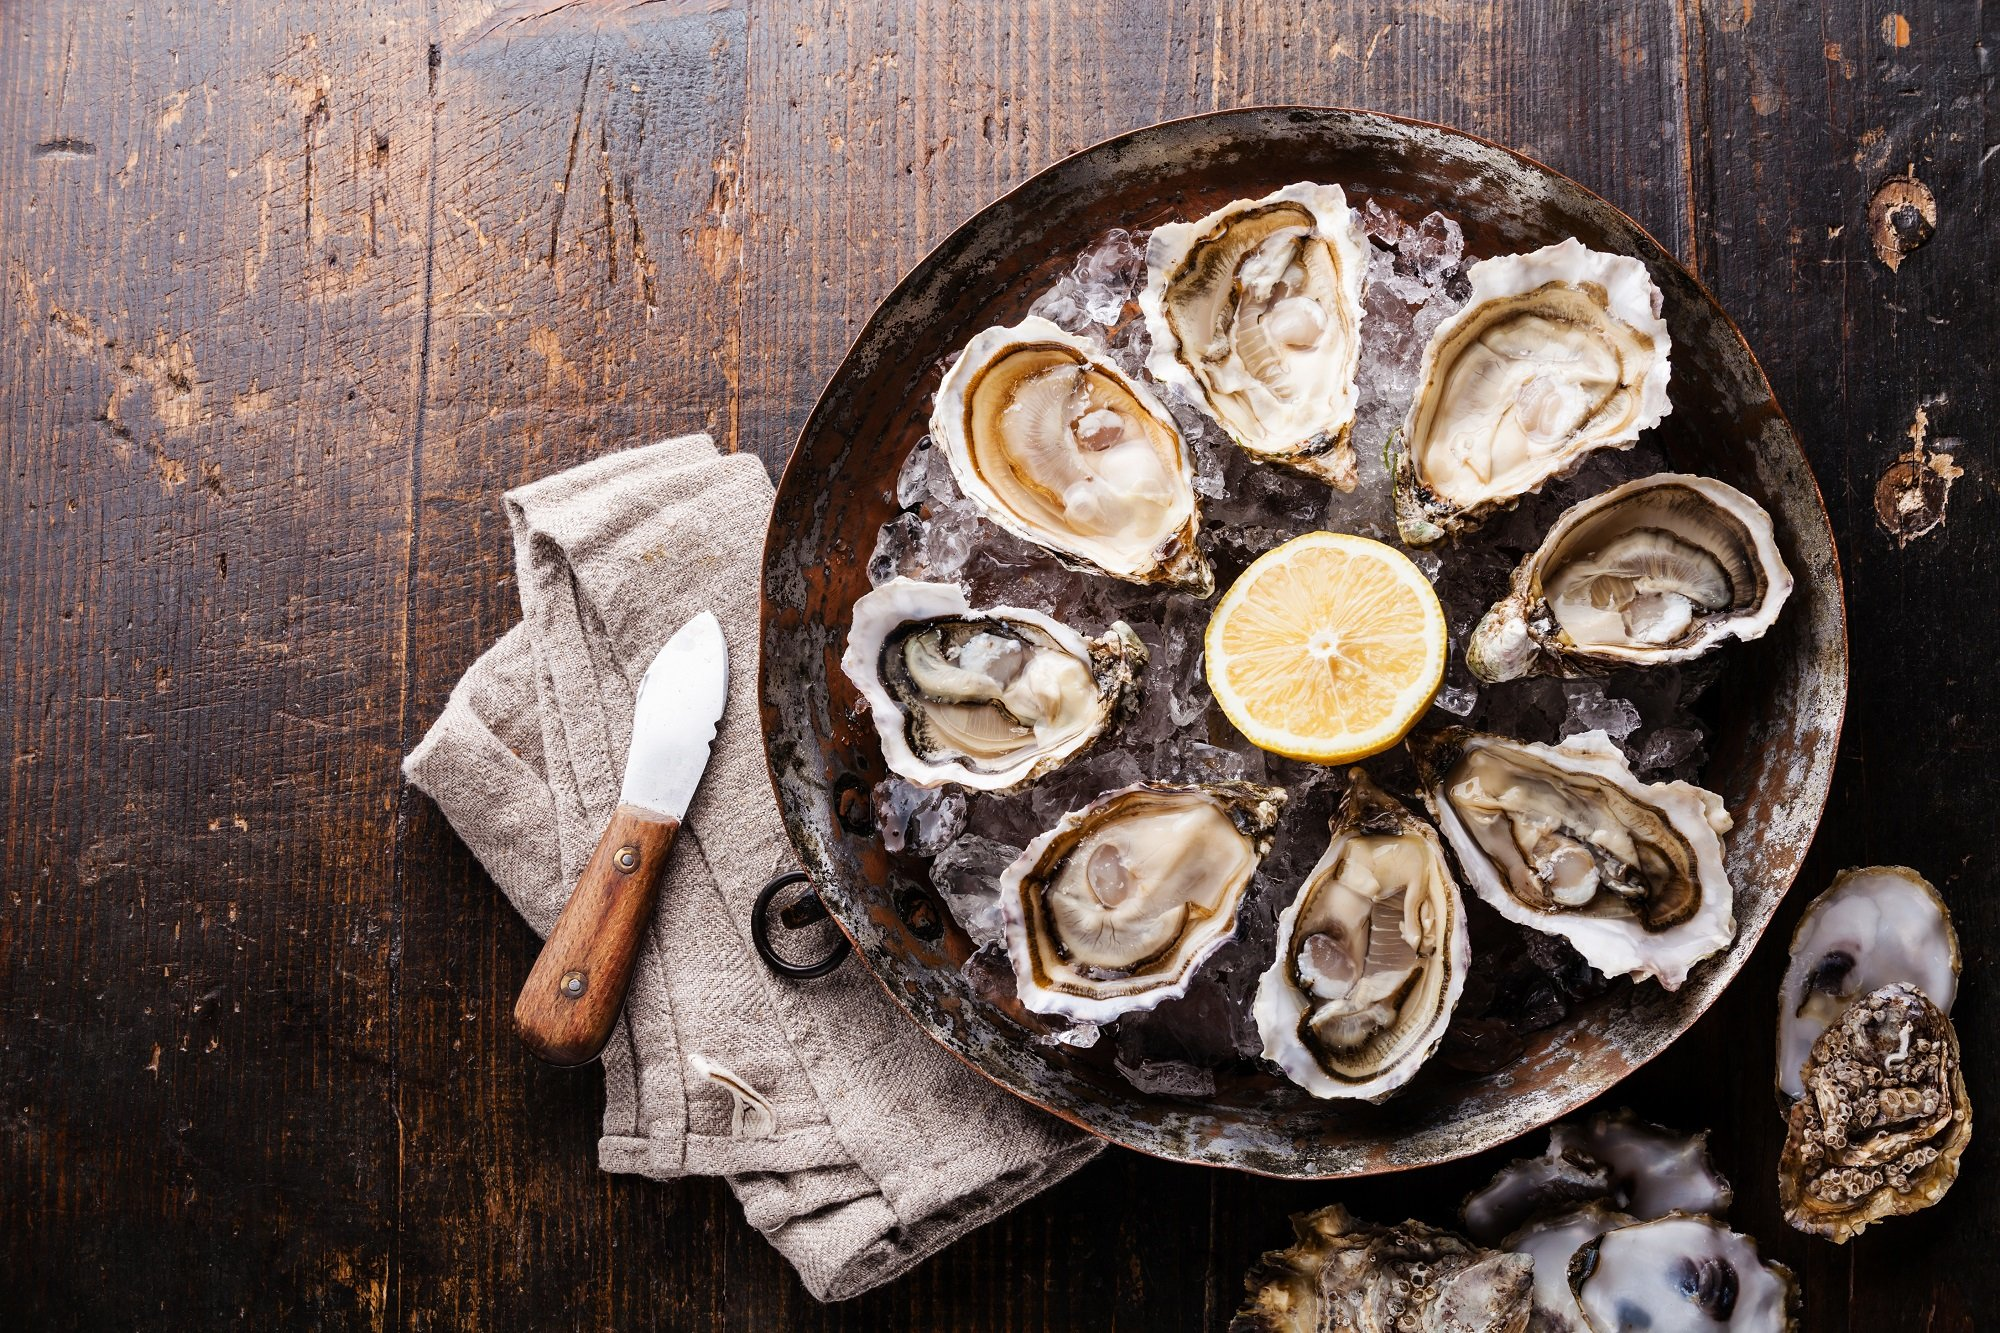 August Calendar 2017 : August th is national oyster day shorebread